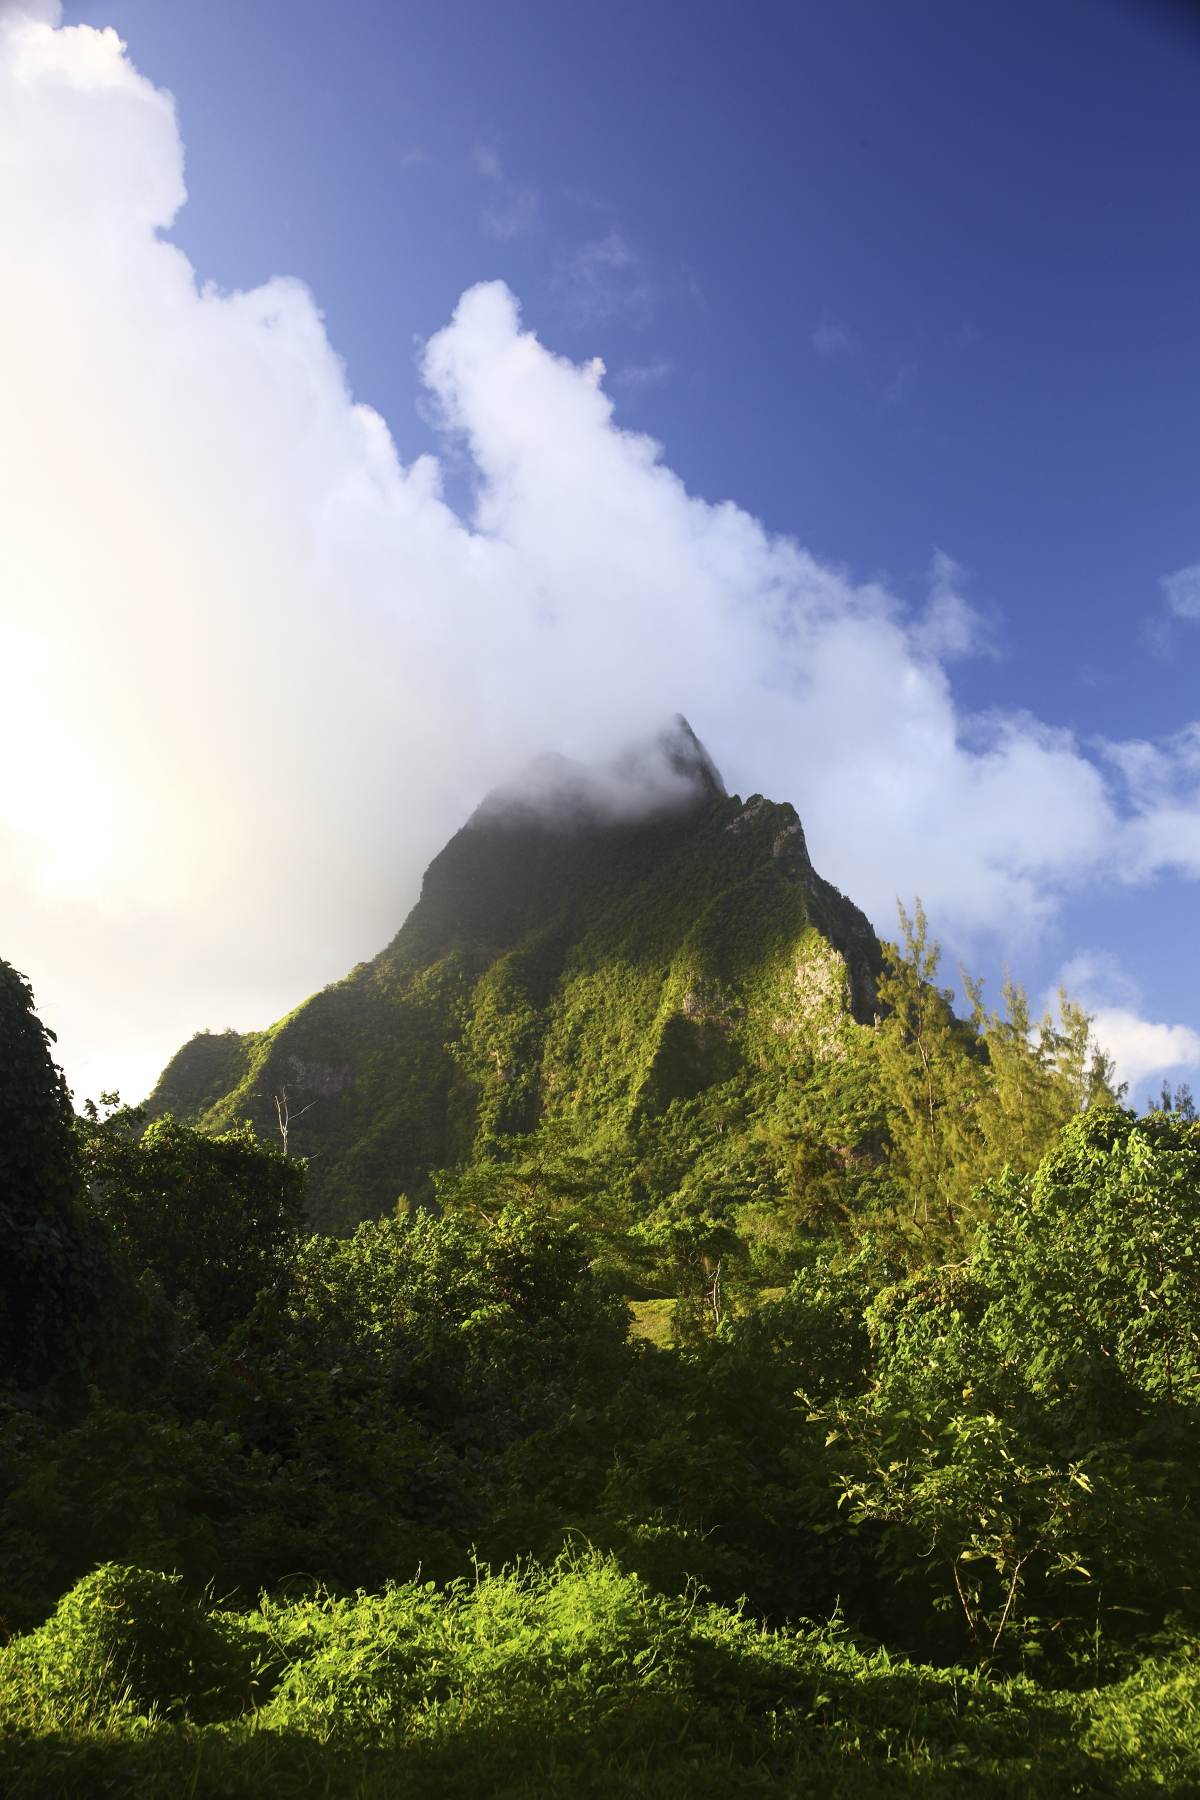 Up in the mountains of Moorea, Tahiti